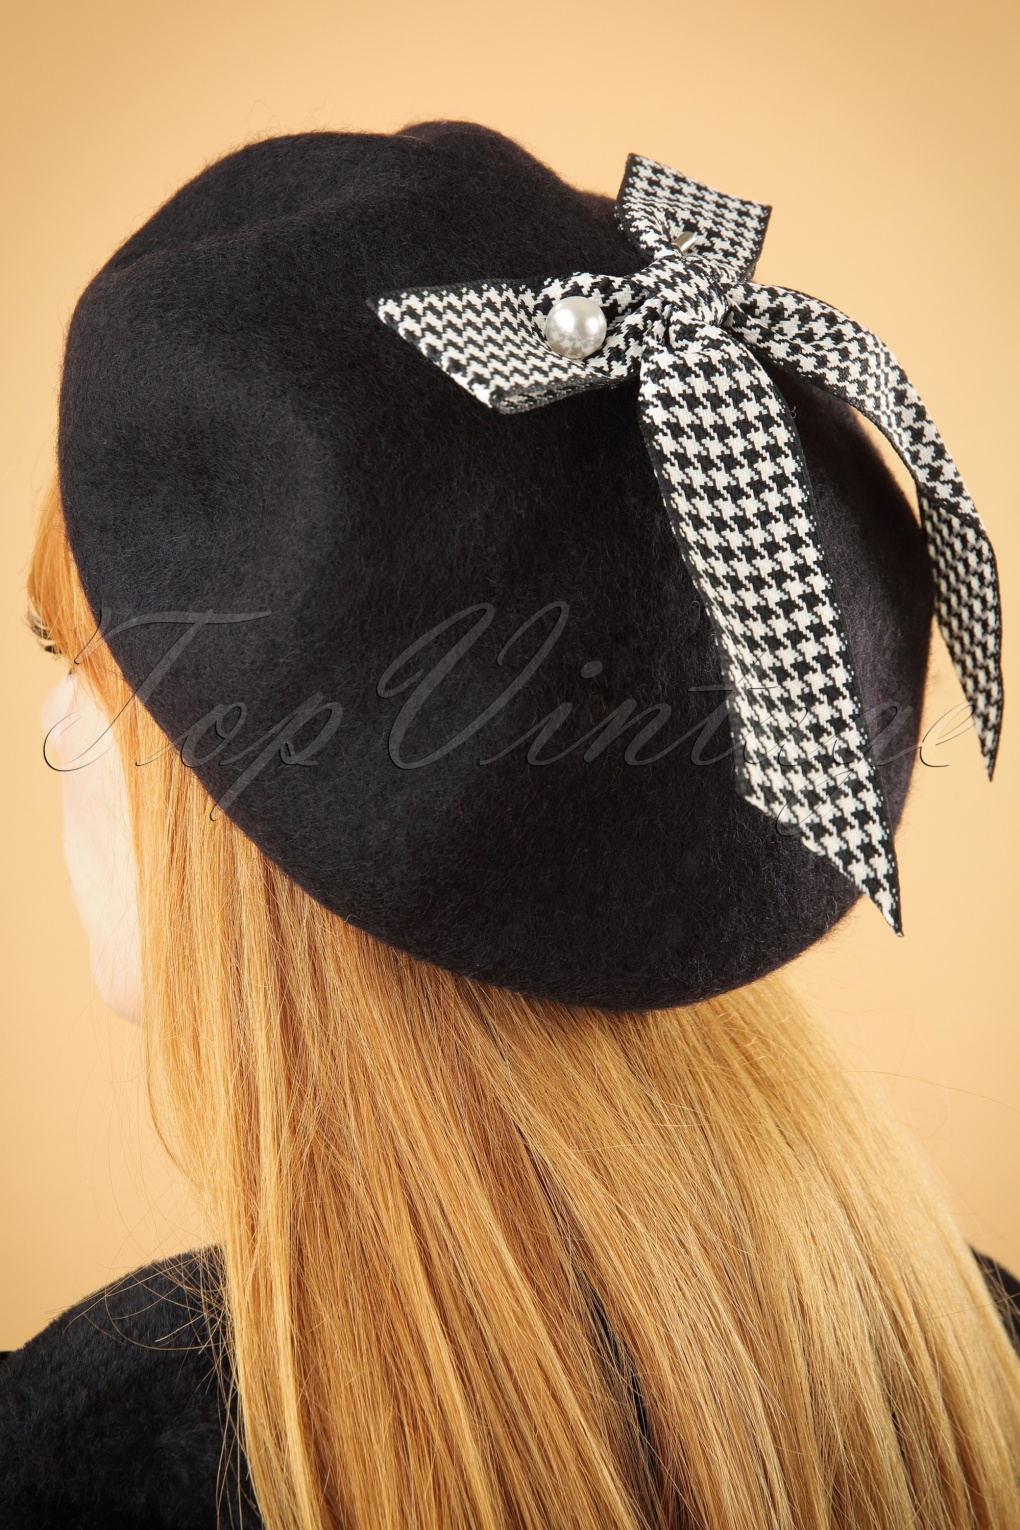 Women's Vintage Hats | Old Fashioned Hats | Retro Hats 50s Bow Wool Beret in Black £13.21 AT vintagedancer.com